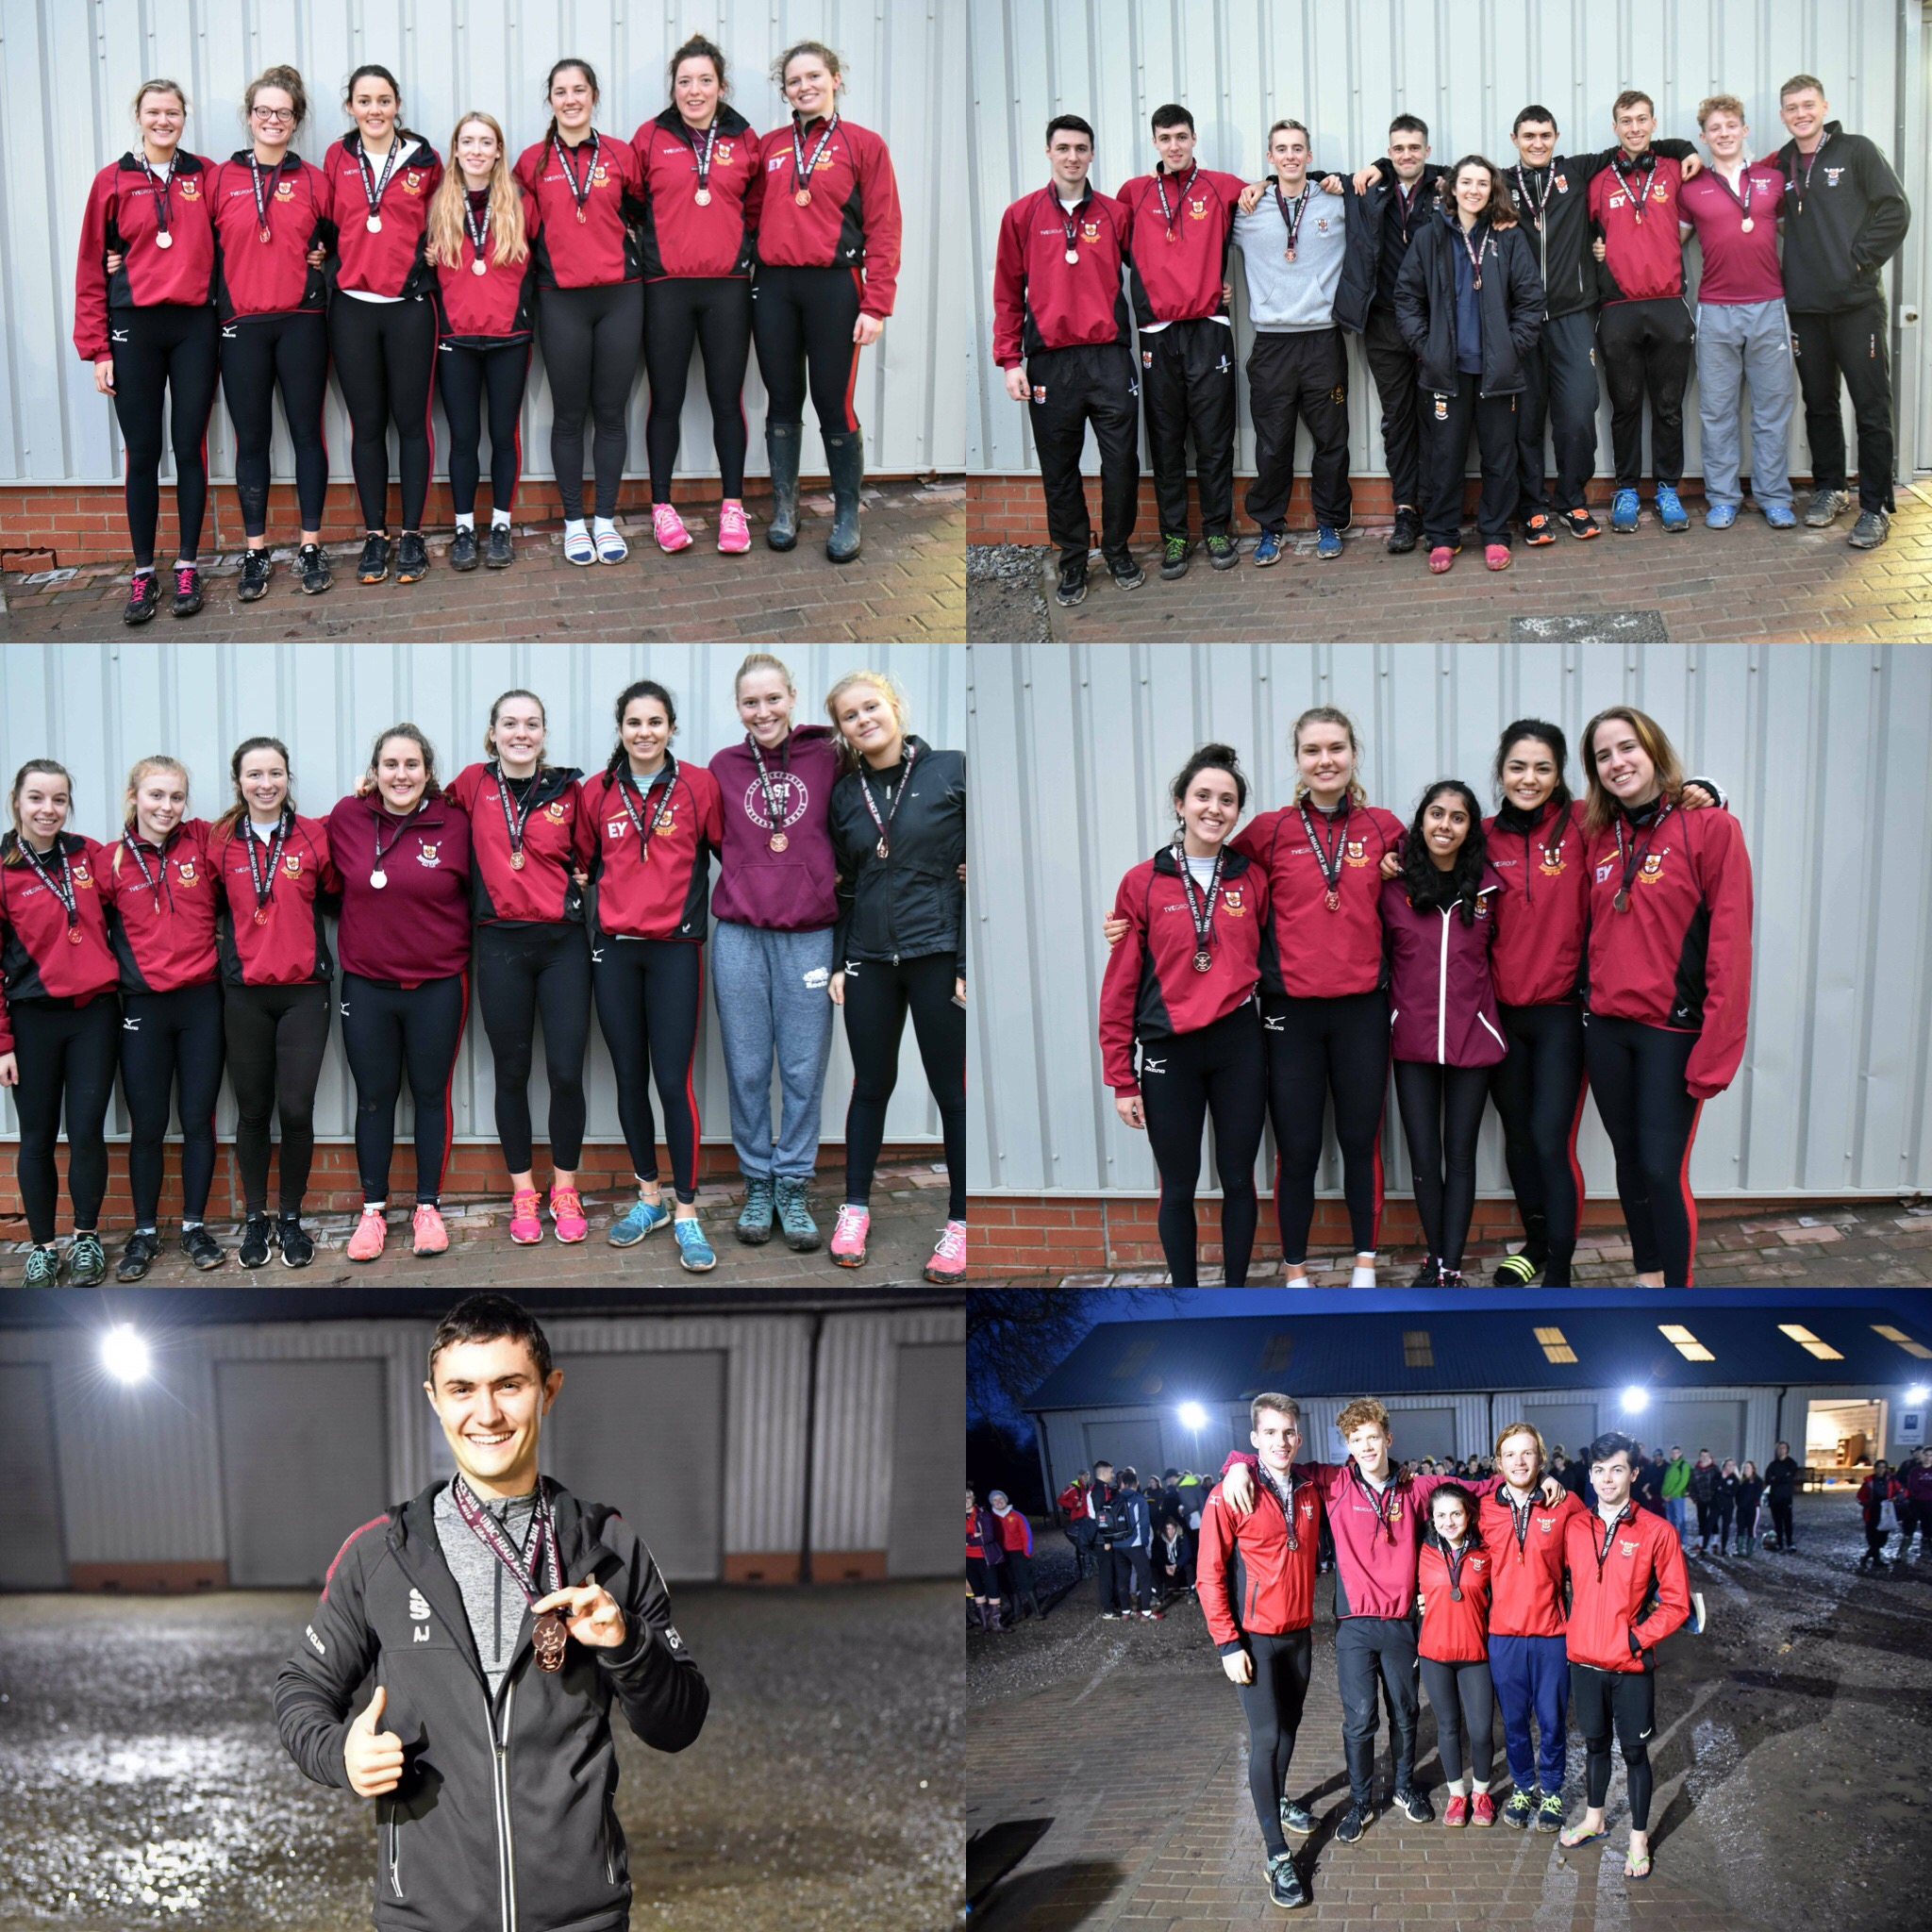 UBBC's Head Race 2018 Winners. From top left clockwise: Women's Championship Eight, Men's Championship Eight, Women's Intermediate Coxed Four, Men's Beginner Coxed Four, Men's Championship Single, Women's Intermediate Eight